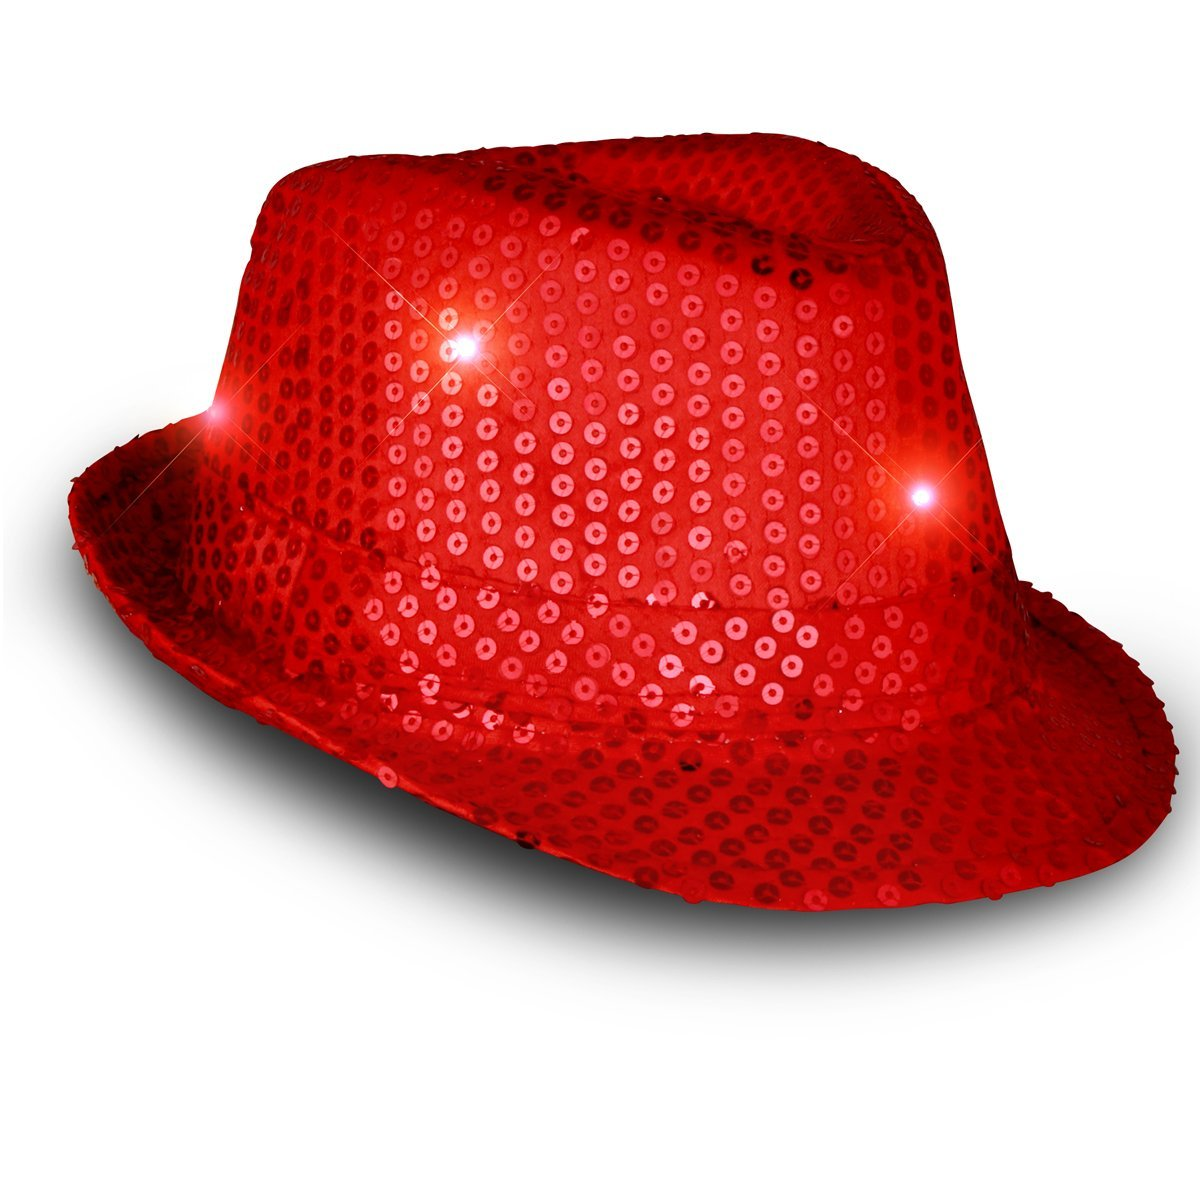 FUN Light Up Cowboy Hat RED LED Cowboy Hat with RED Sequins